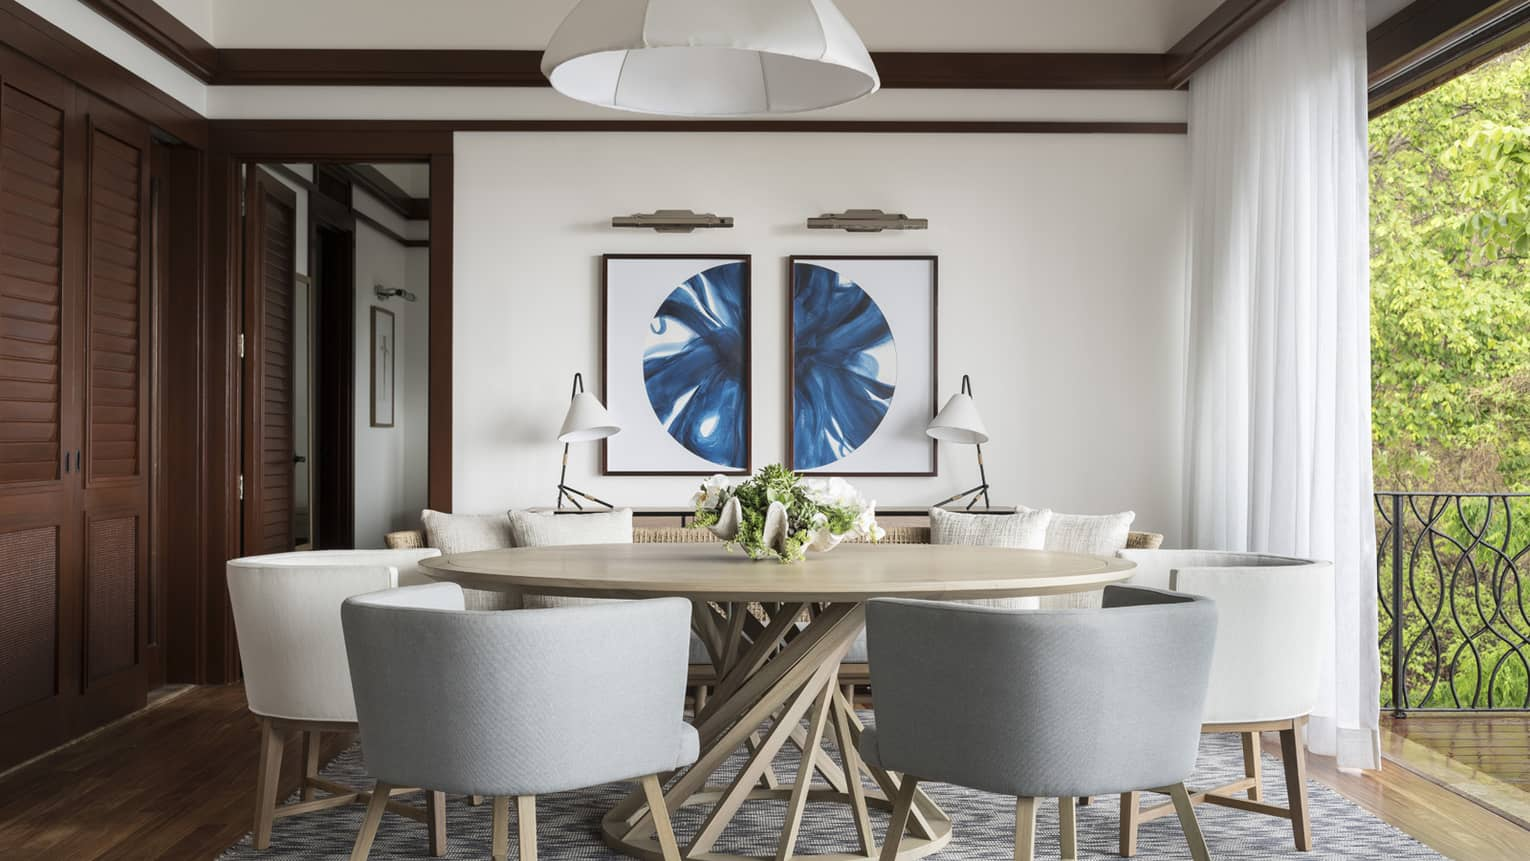 Grey and white mid-century style dining chairs and round dining table by floor-to-ceiling window